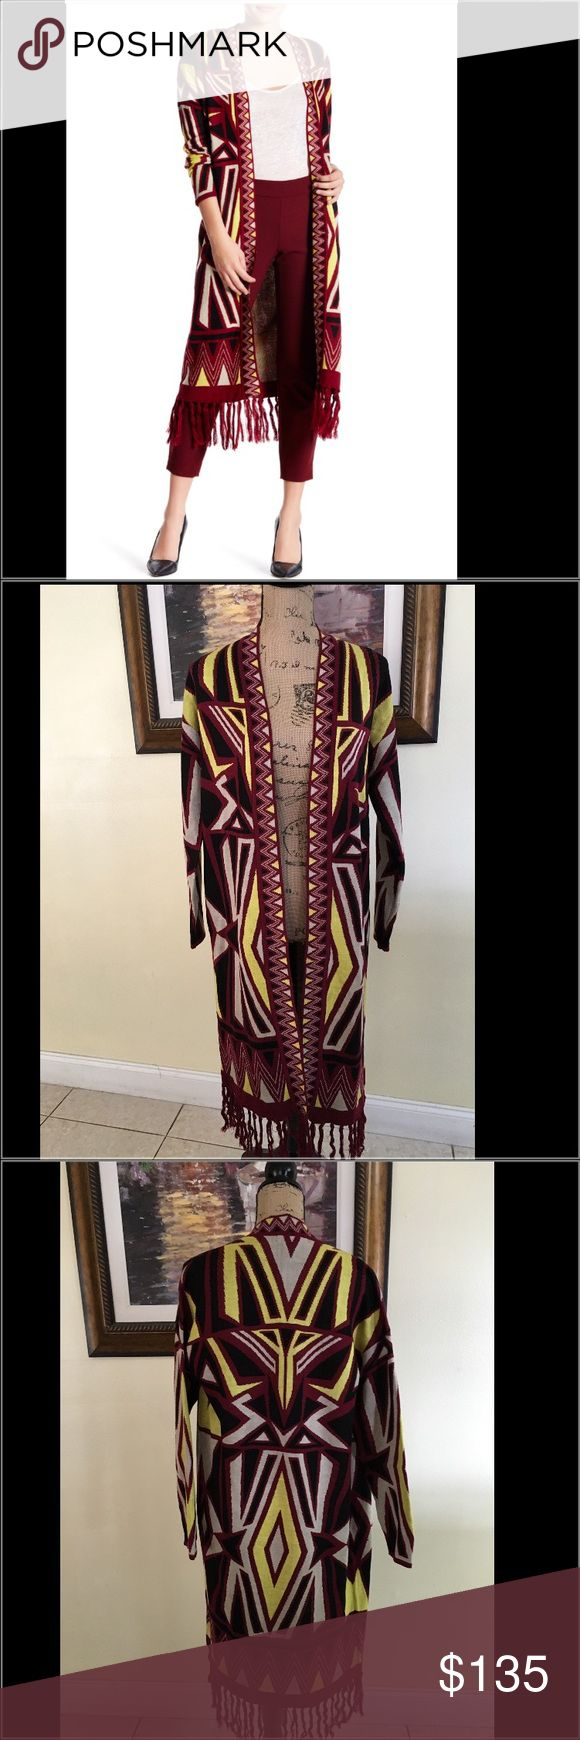 Romeo + Juliet Couture Printed Long Cardigan Romeo + Juliet Couture Printed Long Cardigan.  New with tags.  Love this fringed cardigan.  The colors are so lively and beautiful!  Mix of burgundy, black, yellow and khaki. Romeo & Juliet Couture Sweaters Cardigans